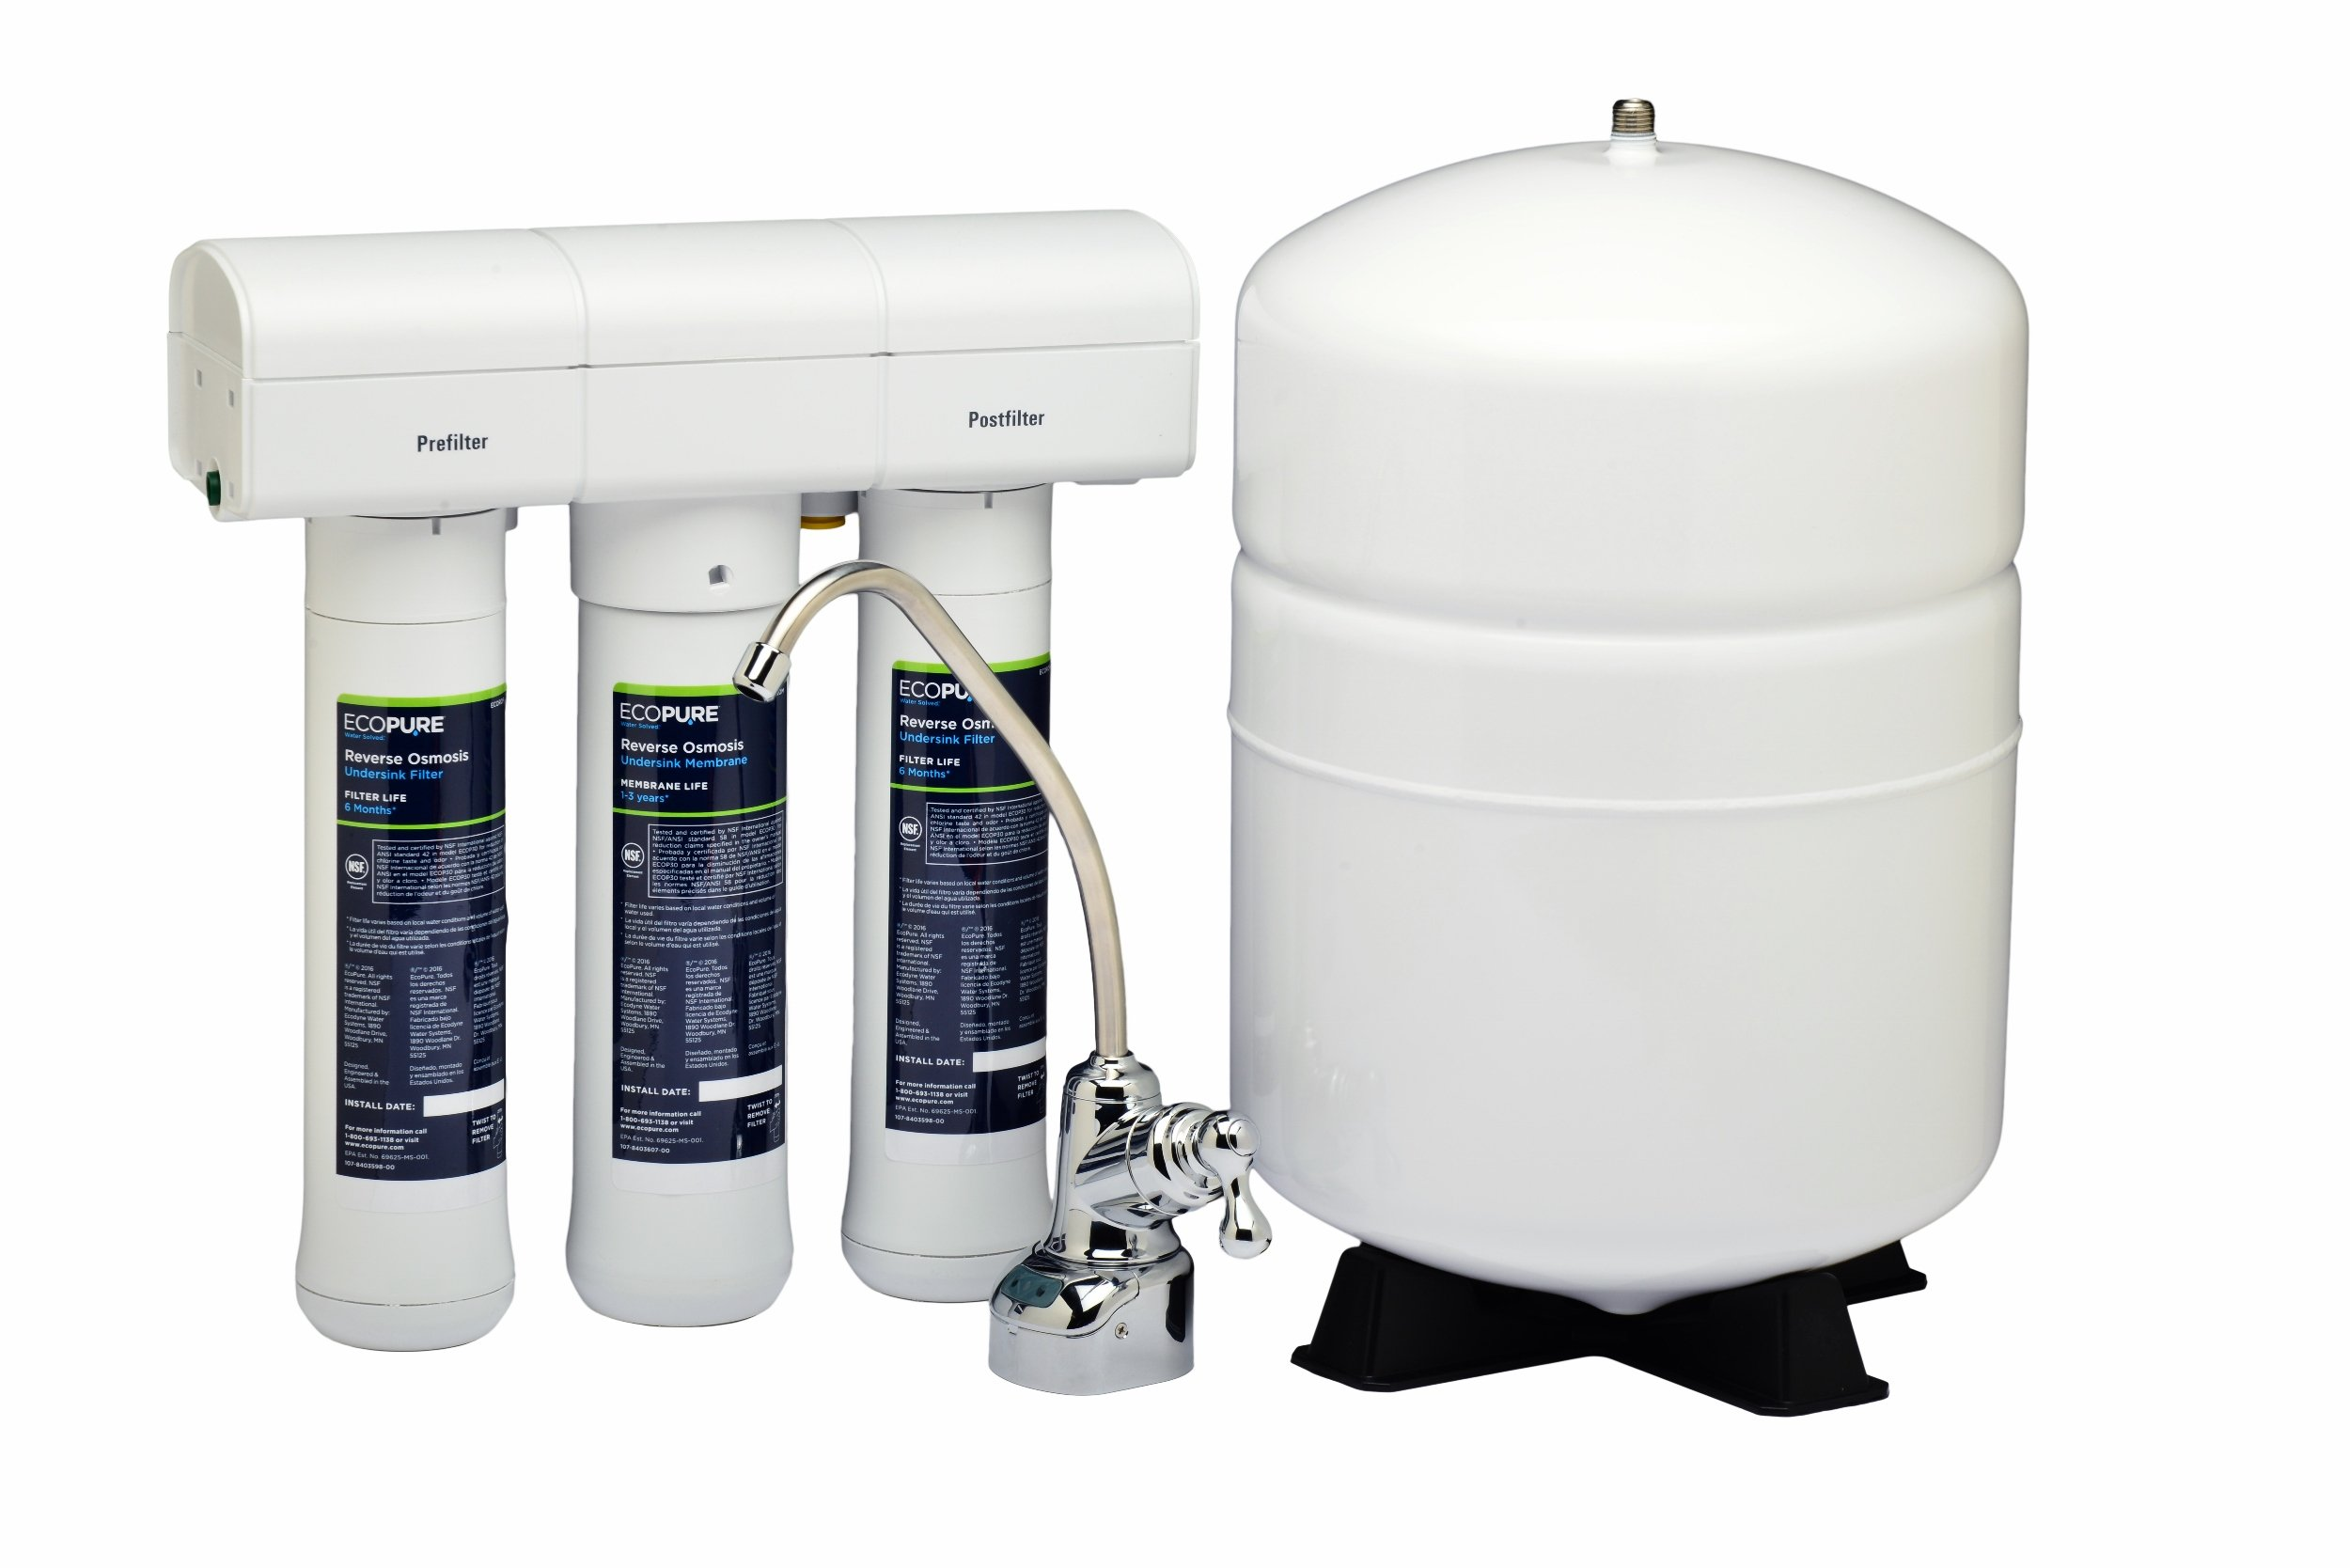 EcoPure Reverse Osmosis Under Sink Water Filtration System (ECOP30) | NSF Certified | Bottled Water Quality for a Fraction of the Price